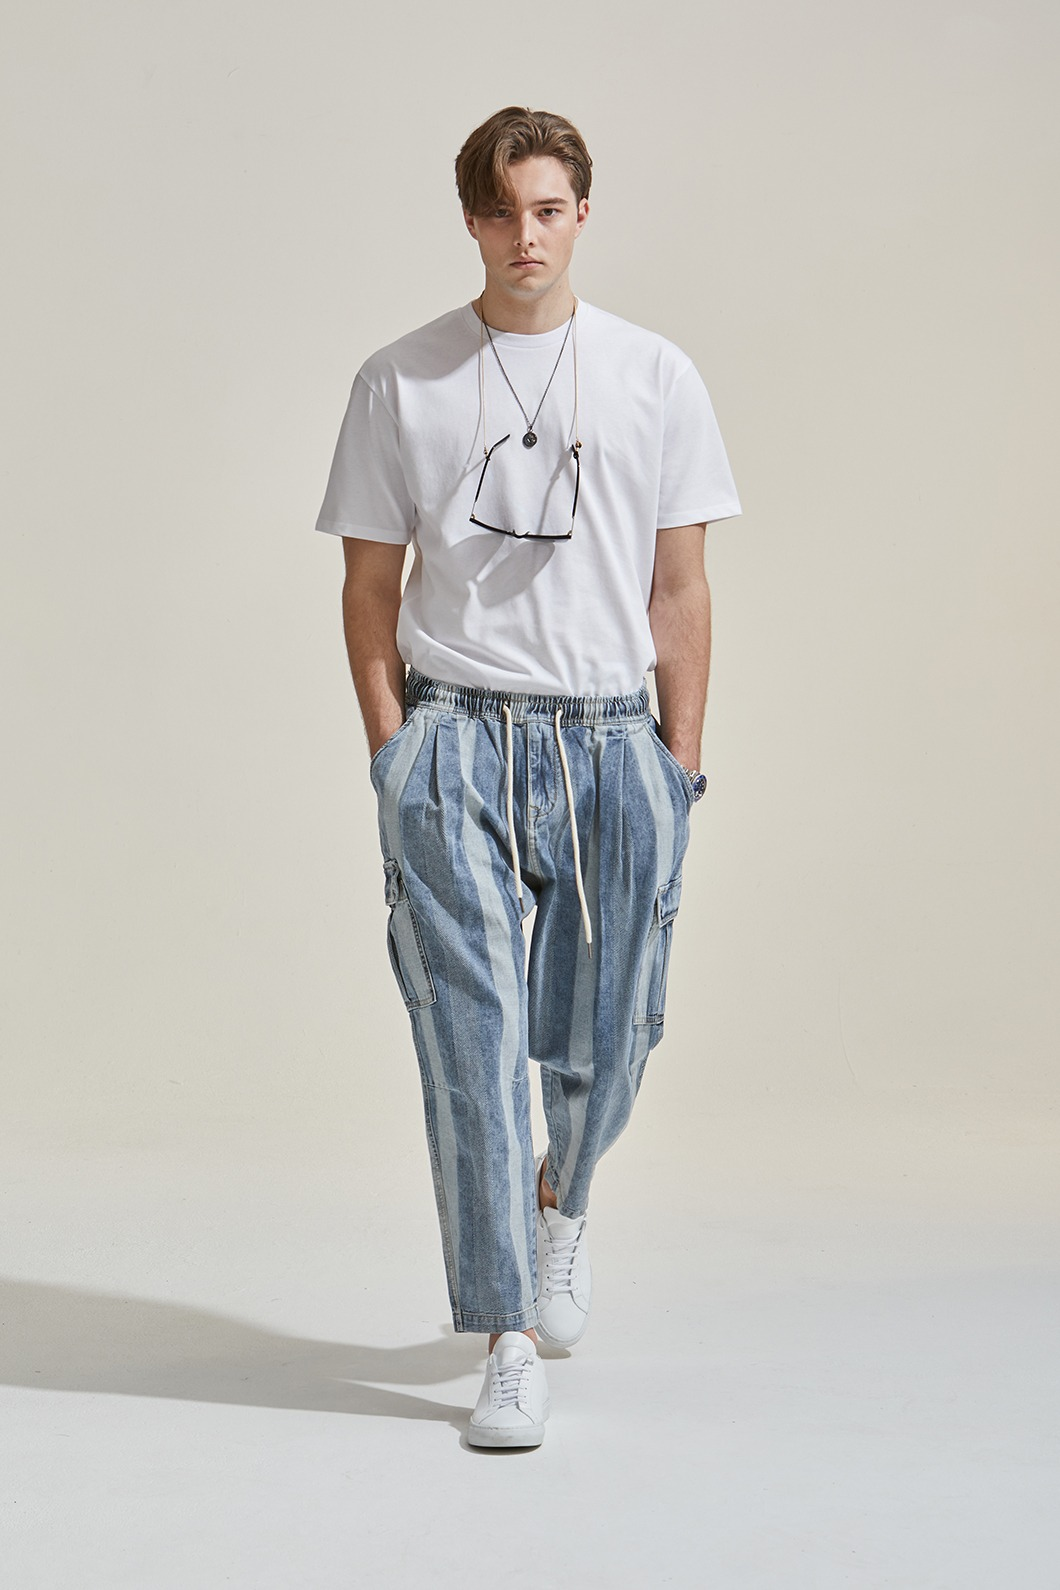 JUG Stripe Light Blue Pants